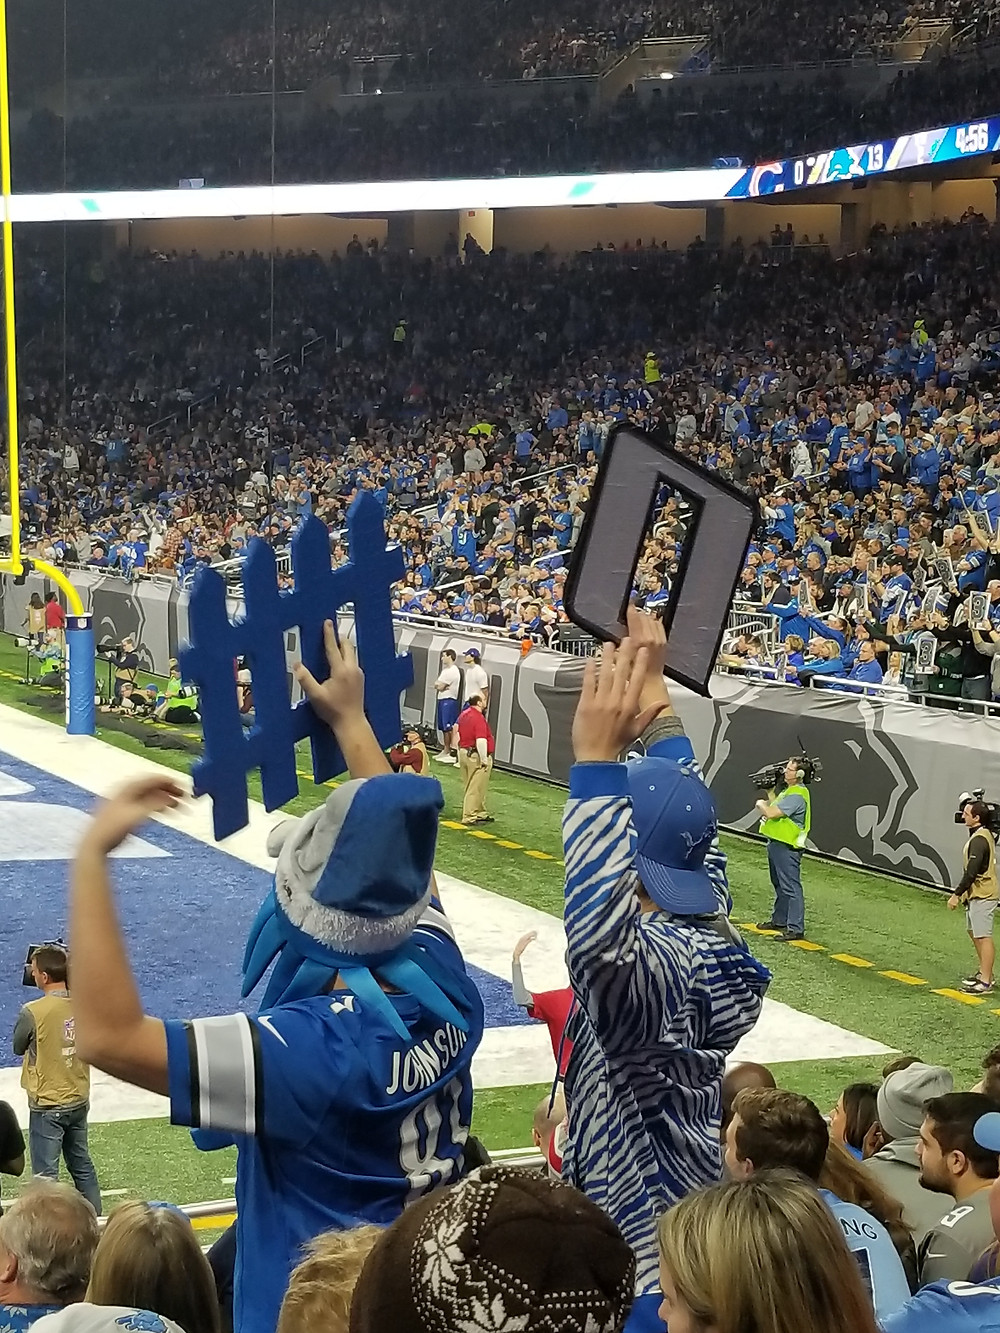 Stadium Review of Ford Field, Detroit